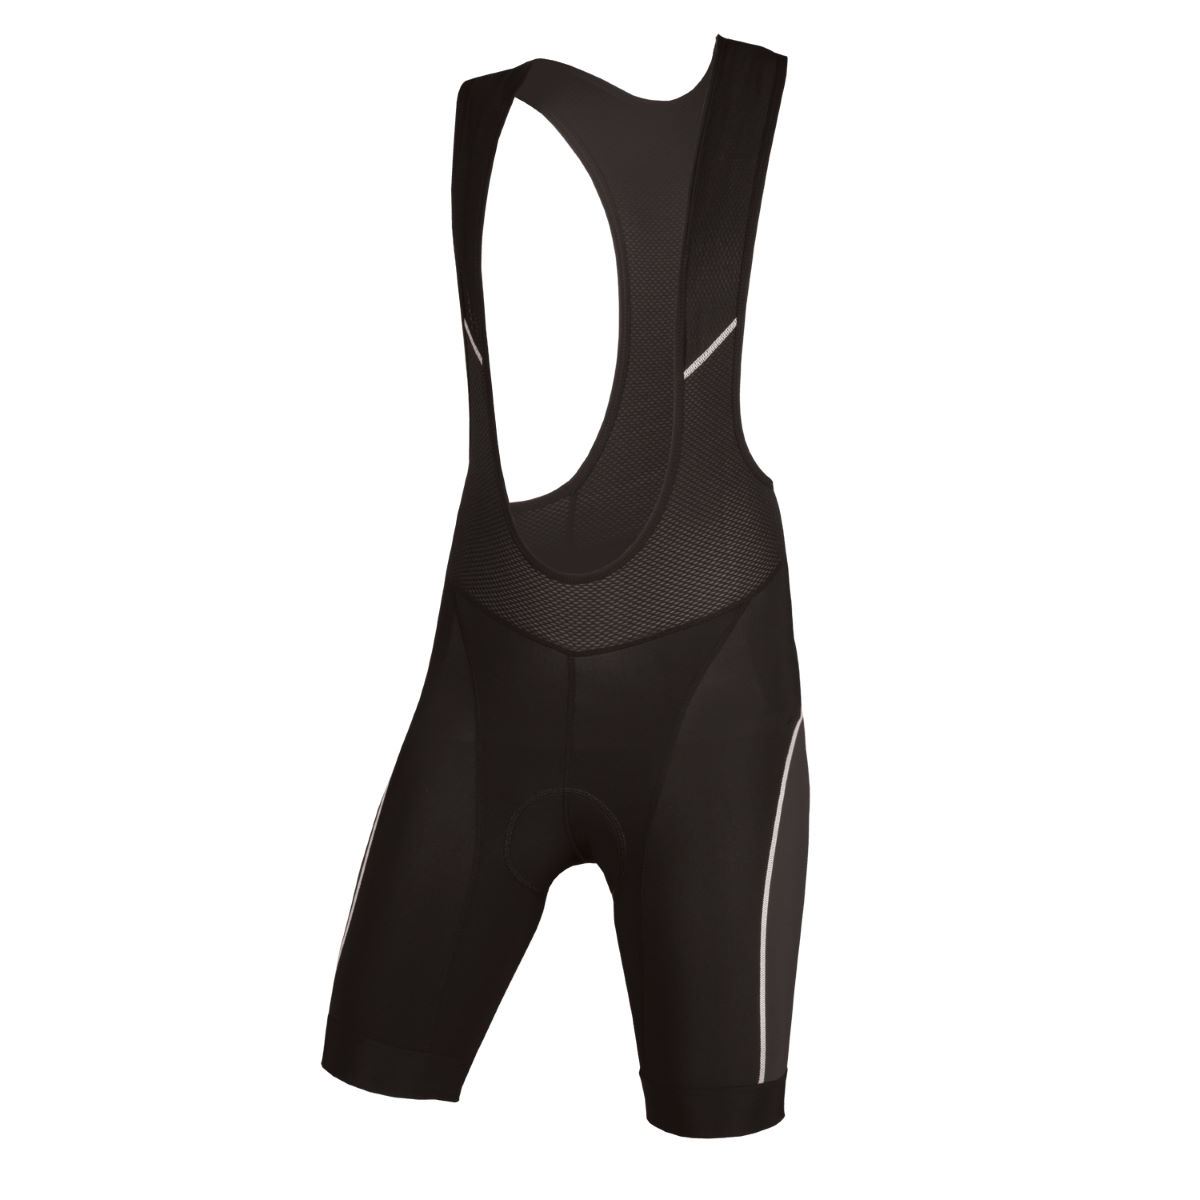 Endura Hyperon Bib Shorts - Small Black | Lycra Cycling Shorts